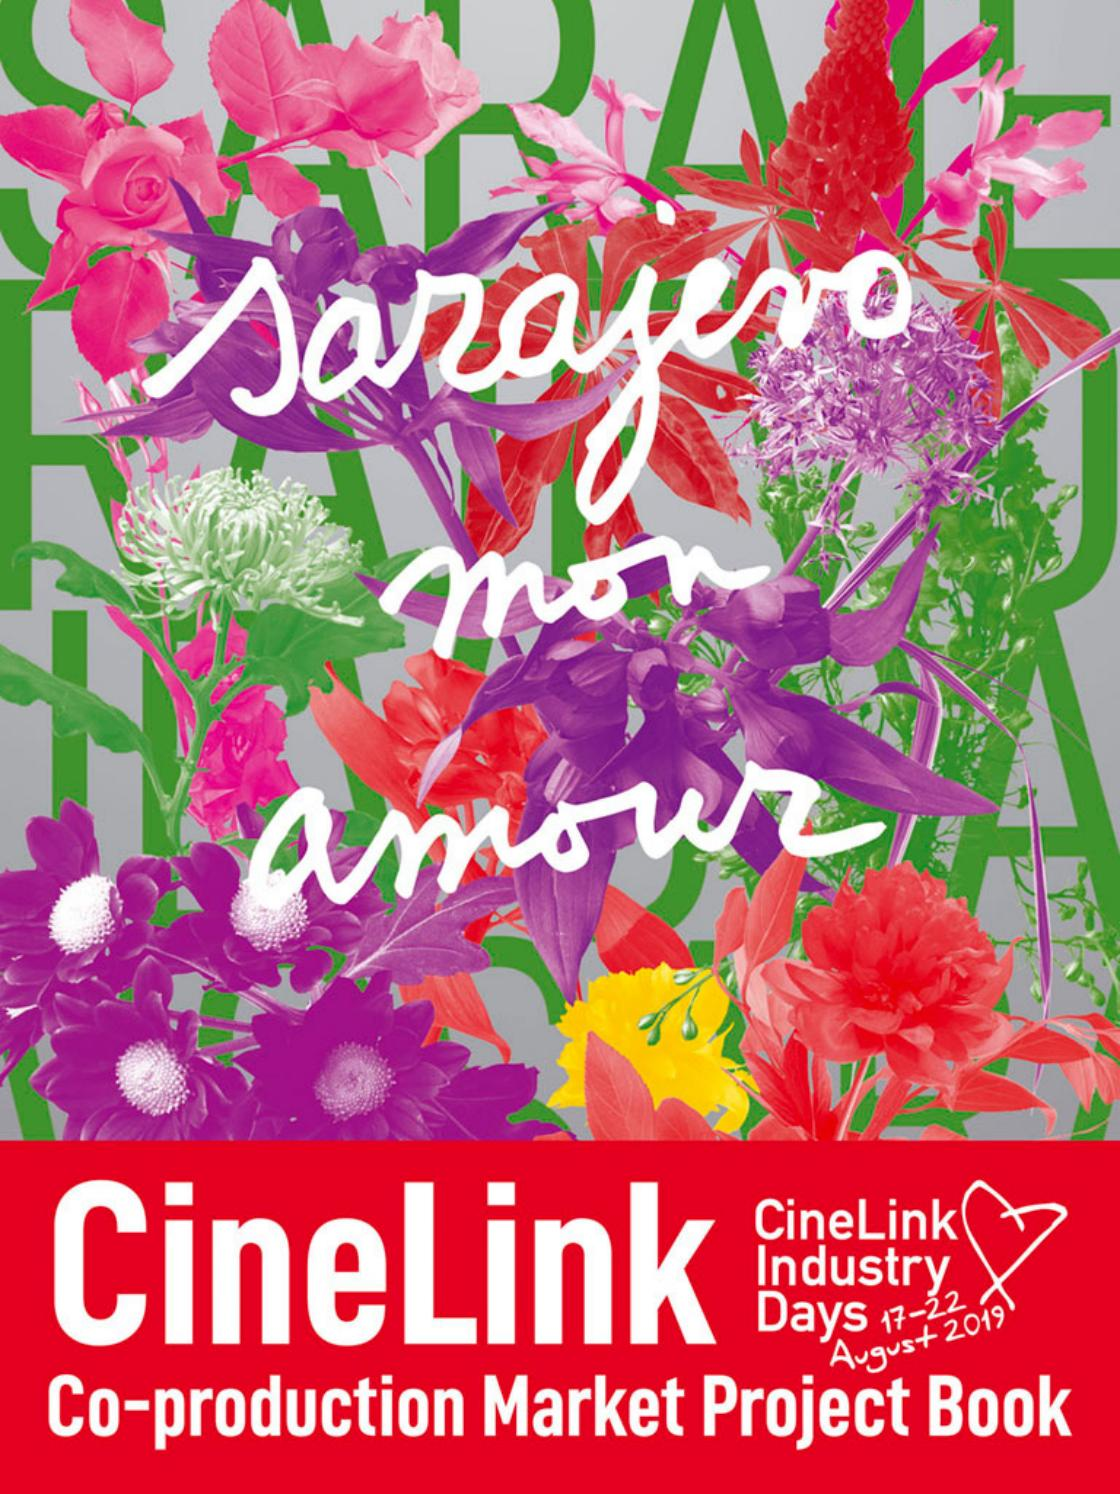 25thsff Cinelink Co Production Market Project Book By